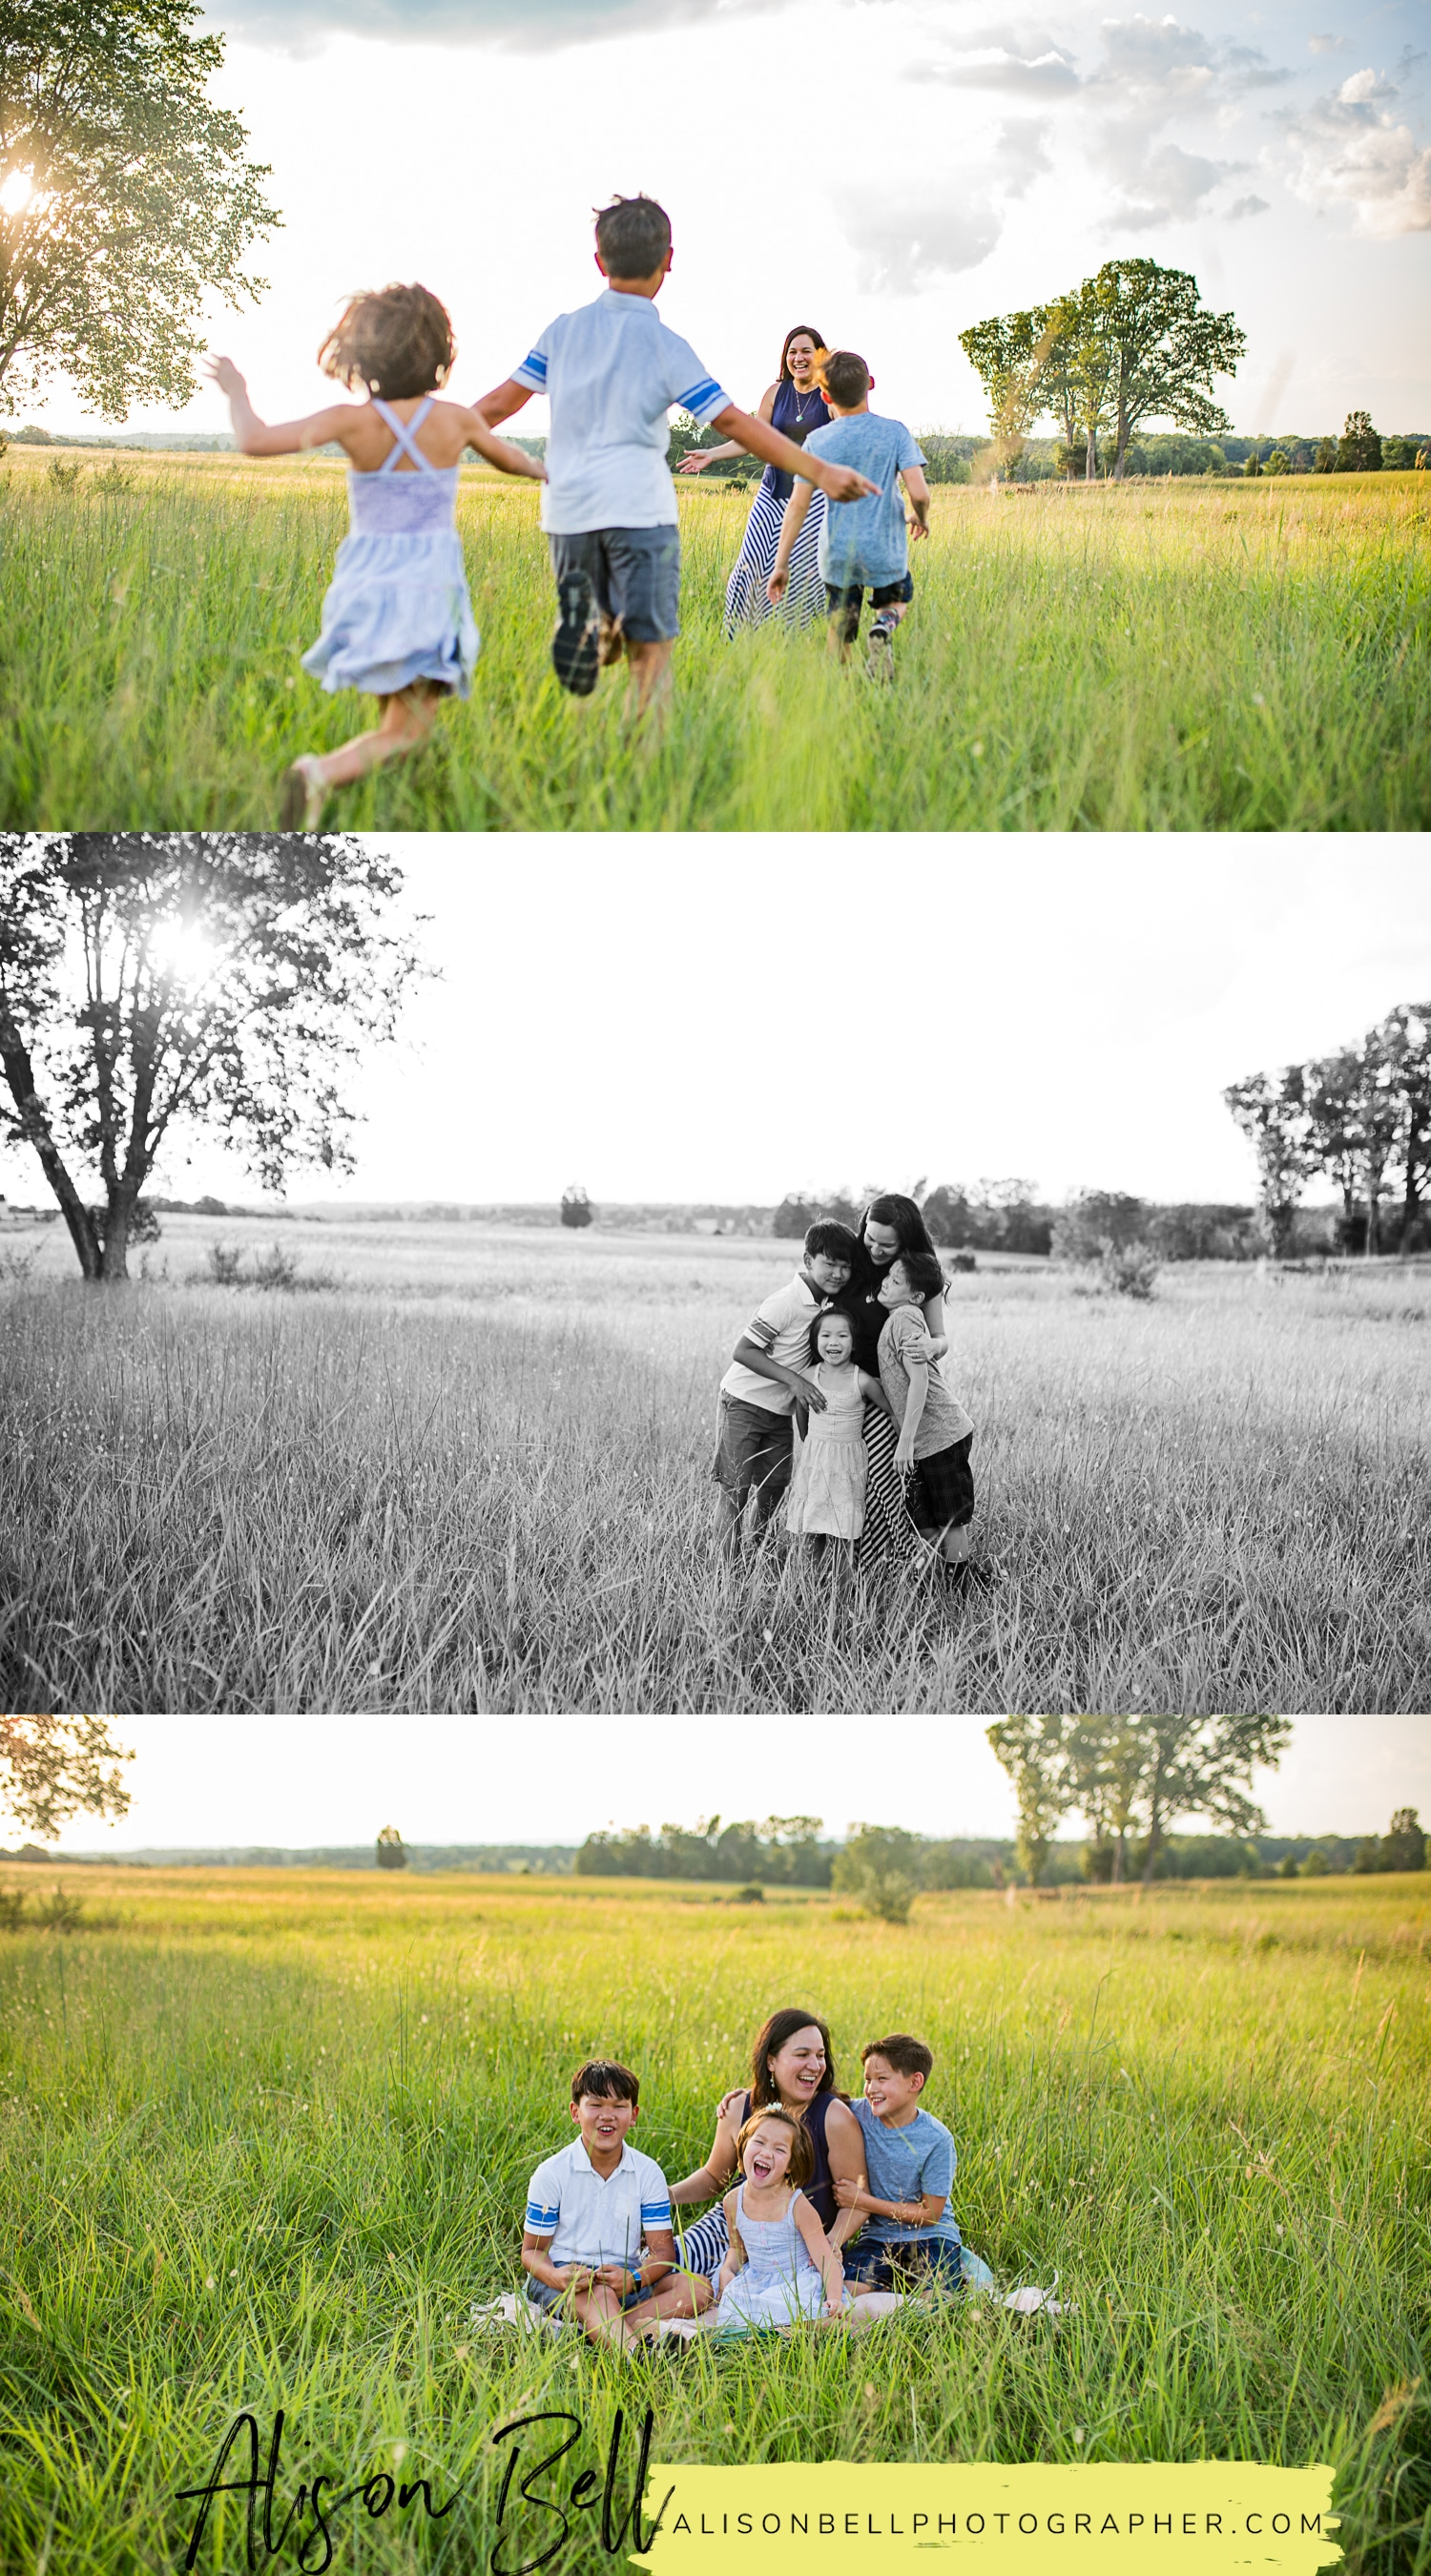 Half Priced mini family session at Manassas Battlefield, Virginia by Alison Bell, Photographer. Family photographer, family photography, Northern Virginia, NOVA, #alisonbellphotog alisonbellphotographer.com